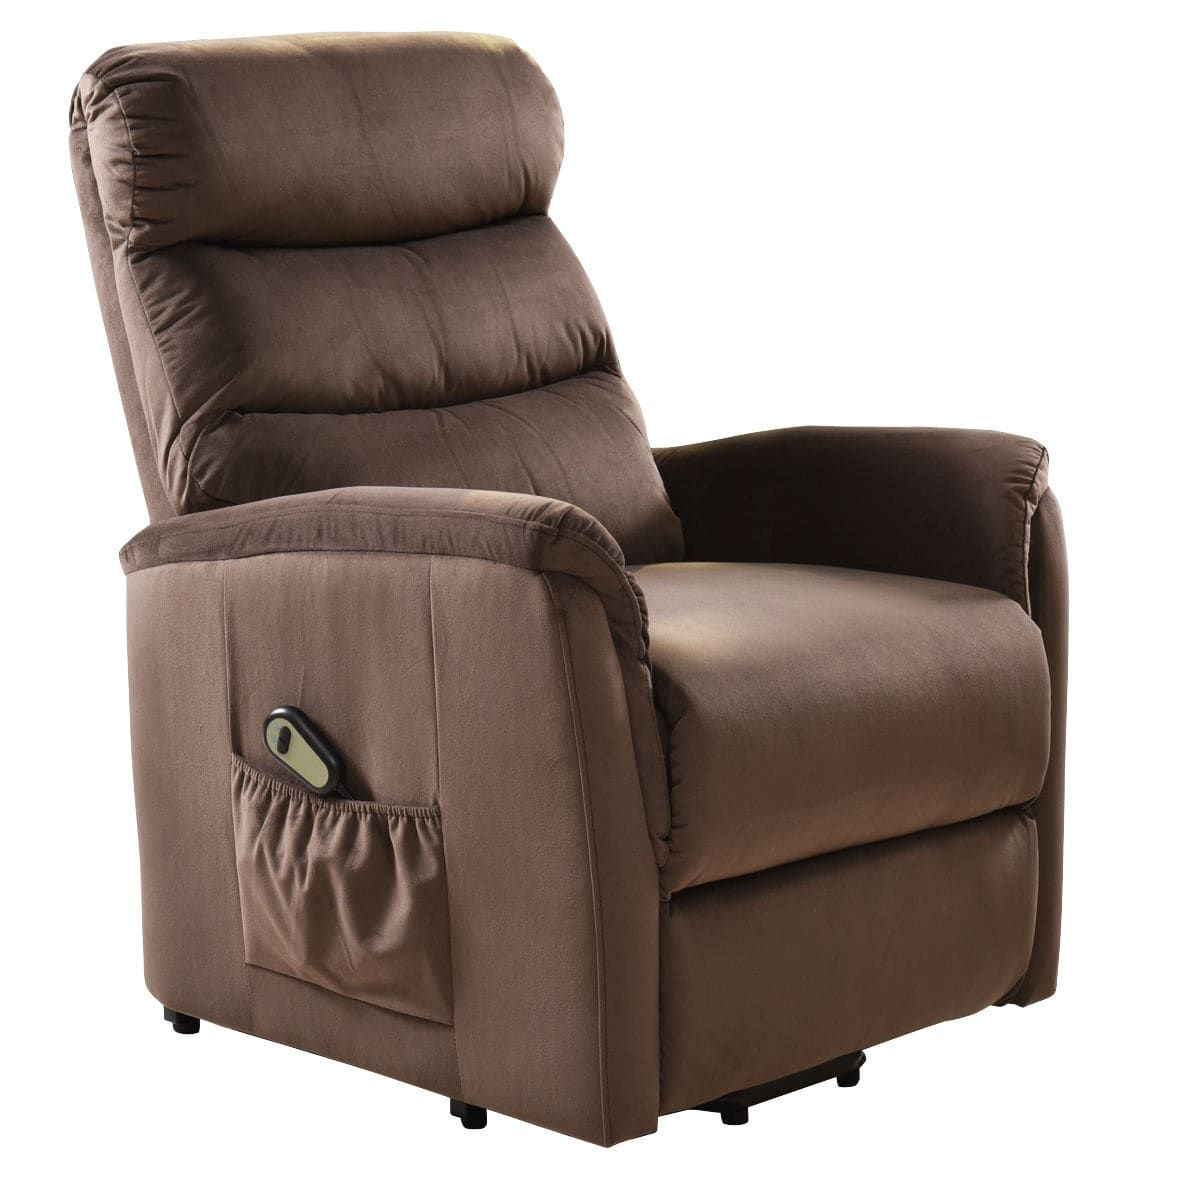 Costway Electric Lift Chair Recliner Reclining Chair ...